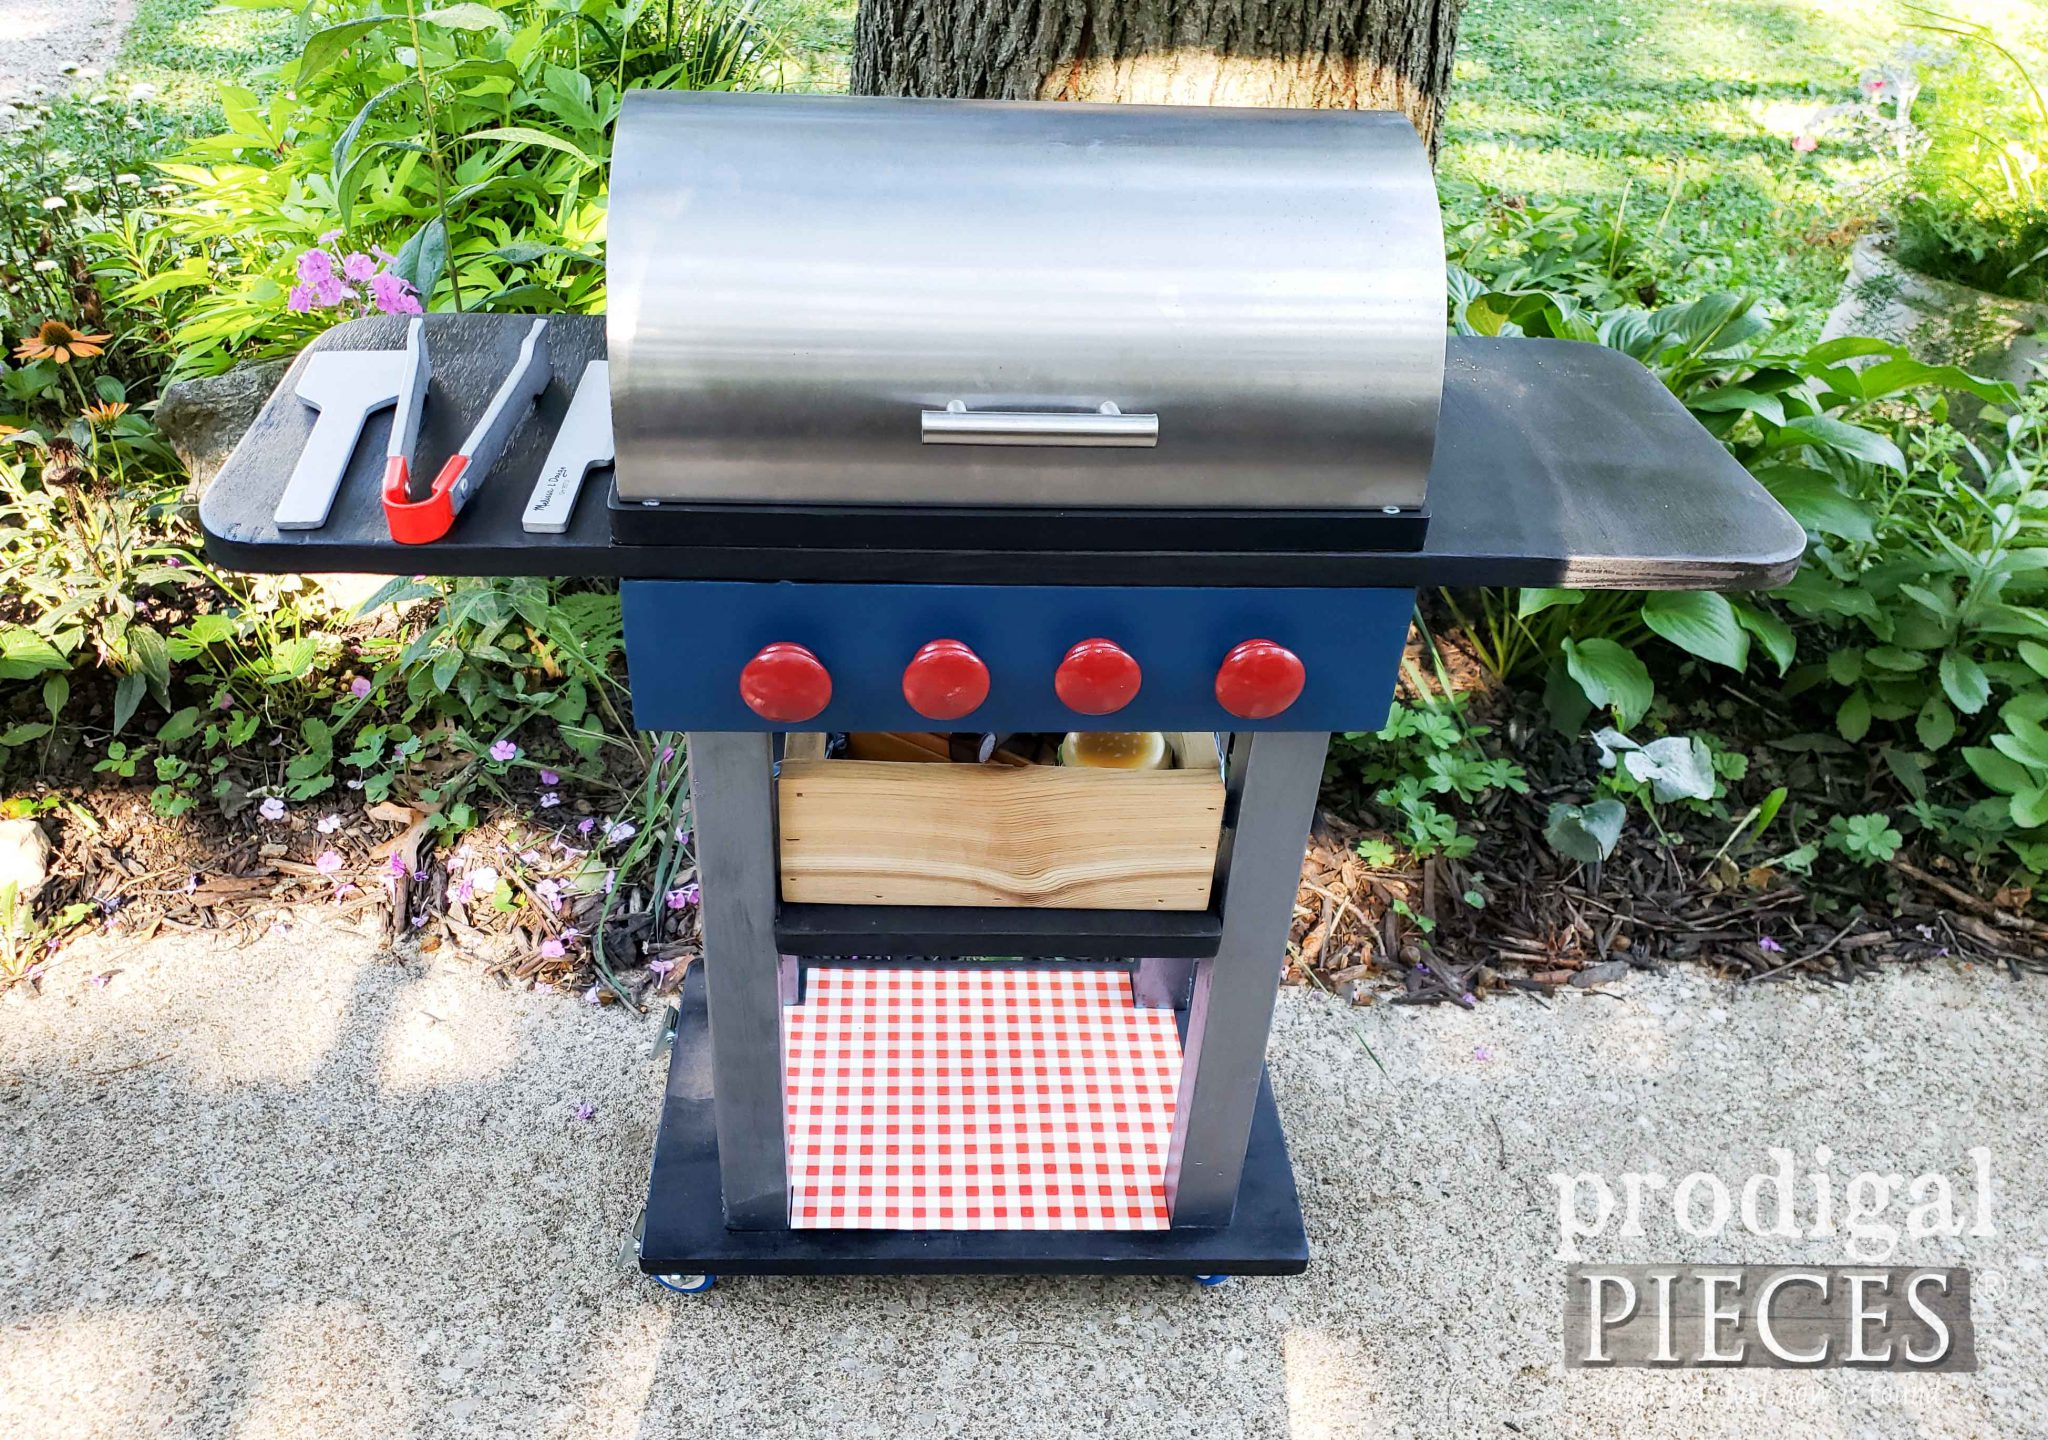 Kids Toy Grill Set with Wooden Food by Larissa of Prodigal Pieces | DIY fun at prodigalpieces.com #prodigalpieces #diy #handmade #toys #kids #home